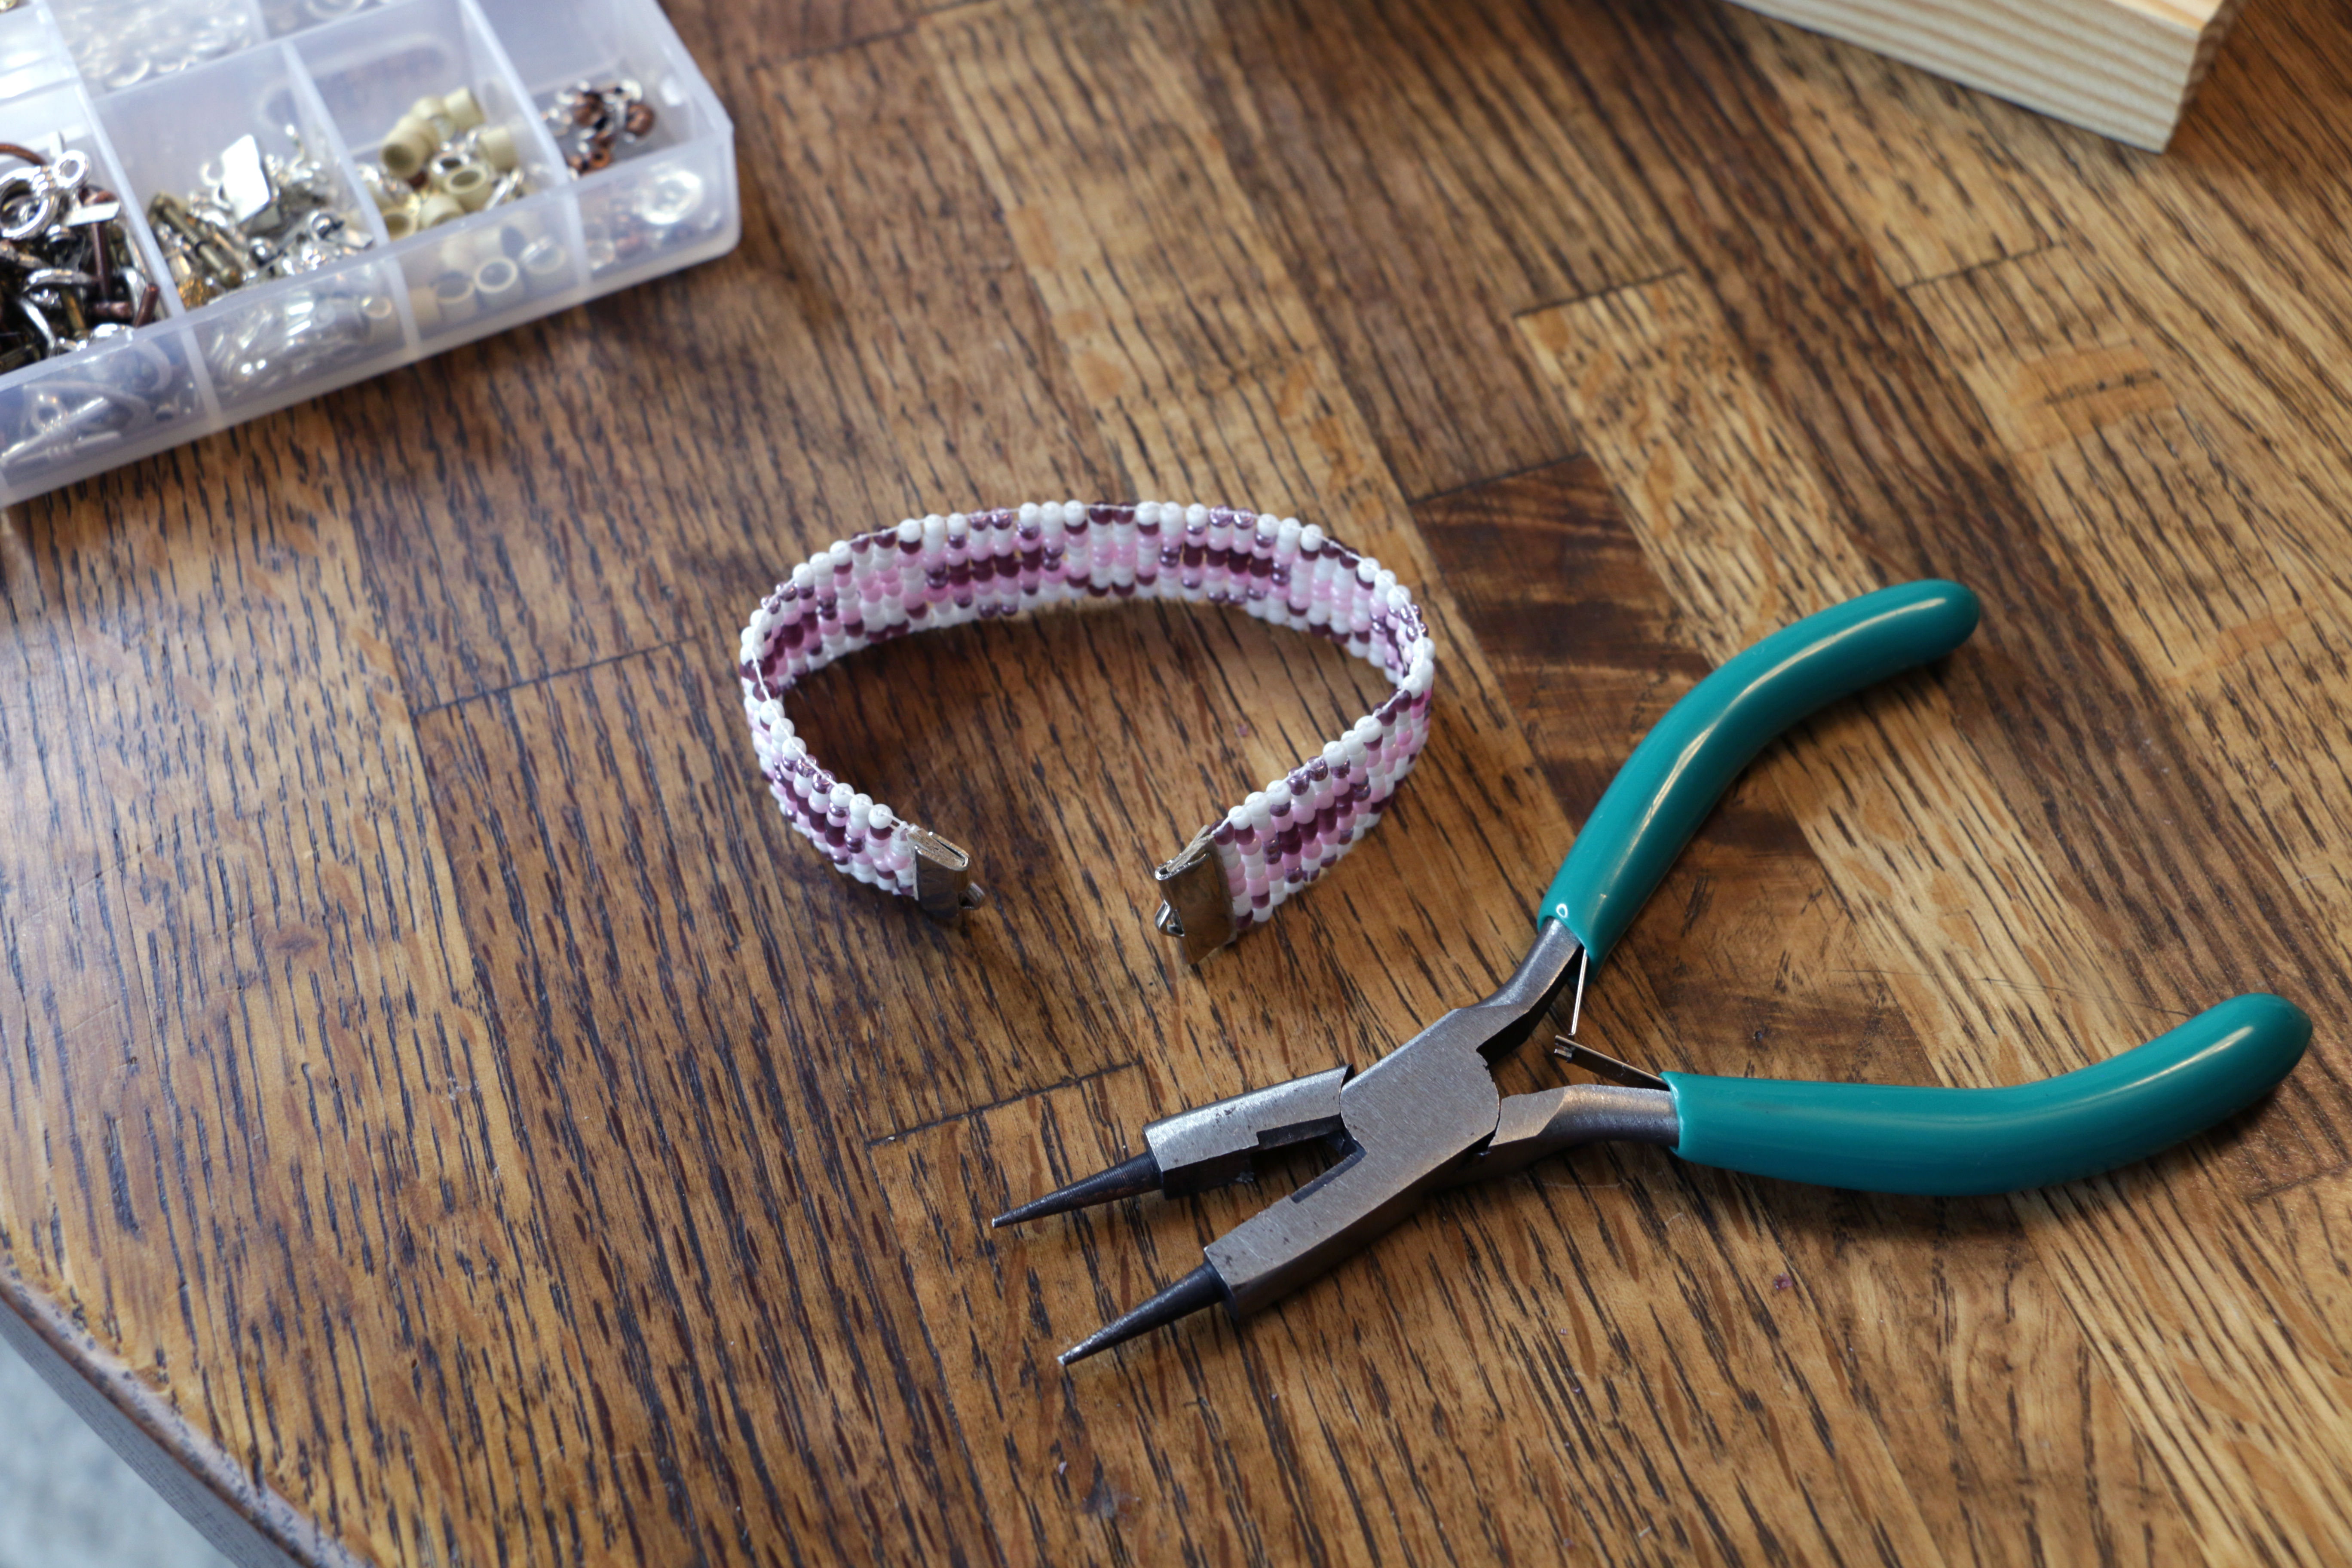 Picture of Finishing the Beaded Bracelet on the Loom